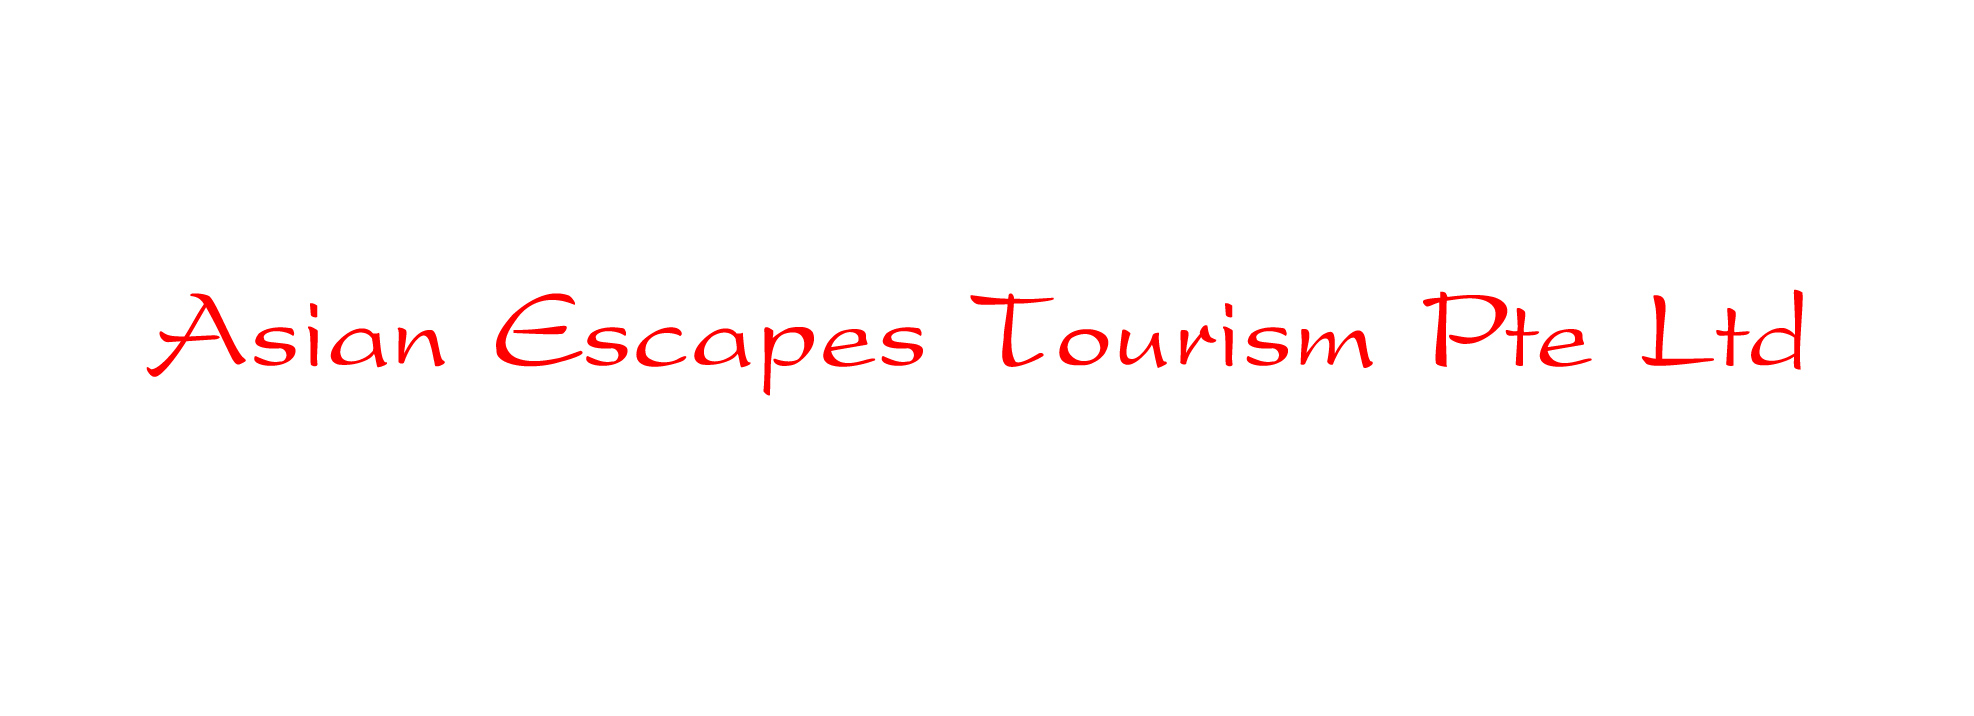 Asian Escapes Tourism Pte Ltd